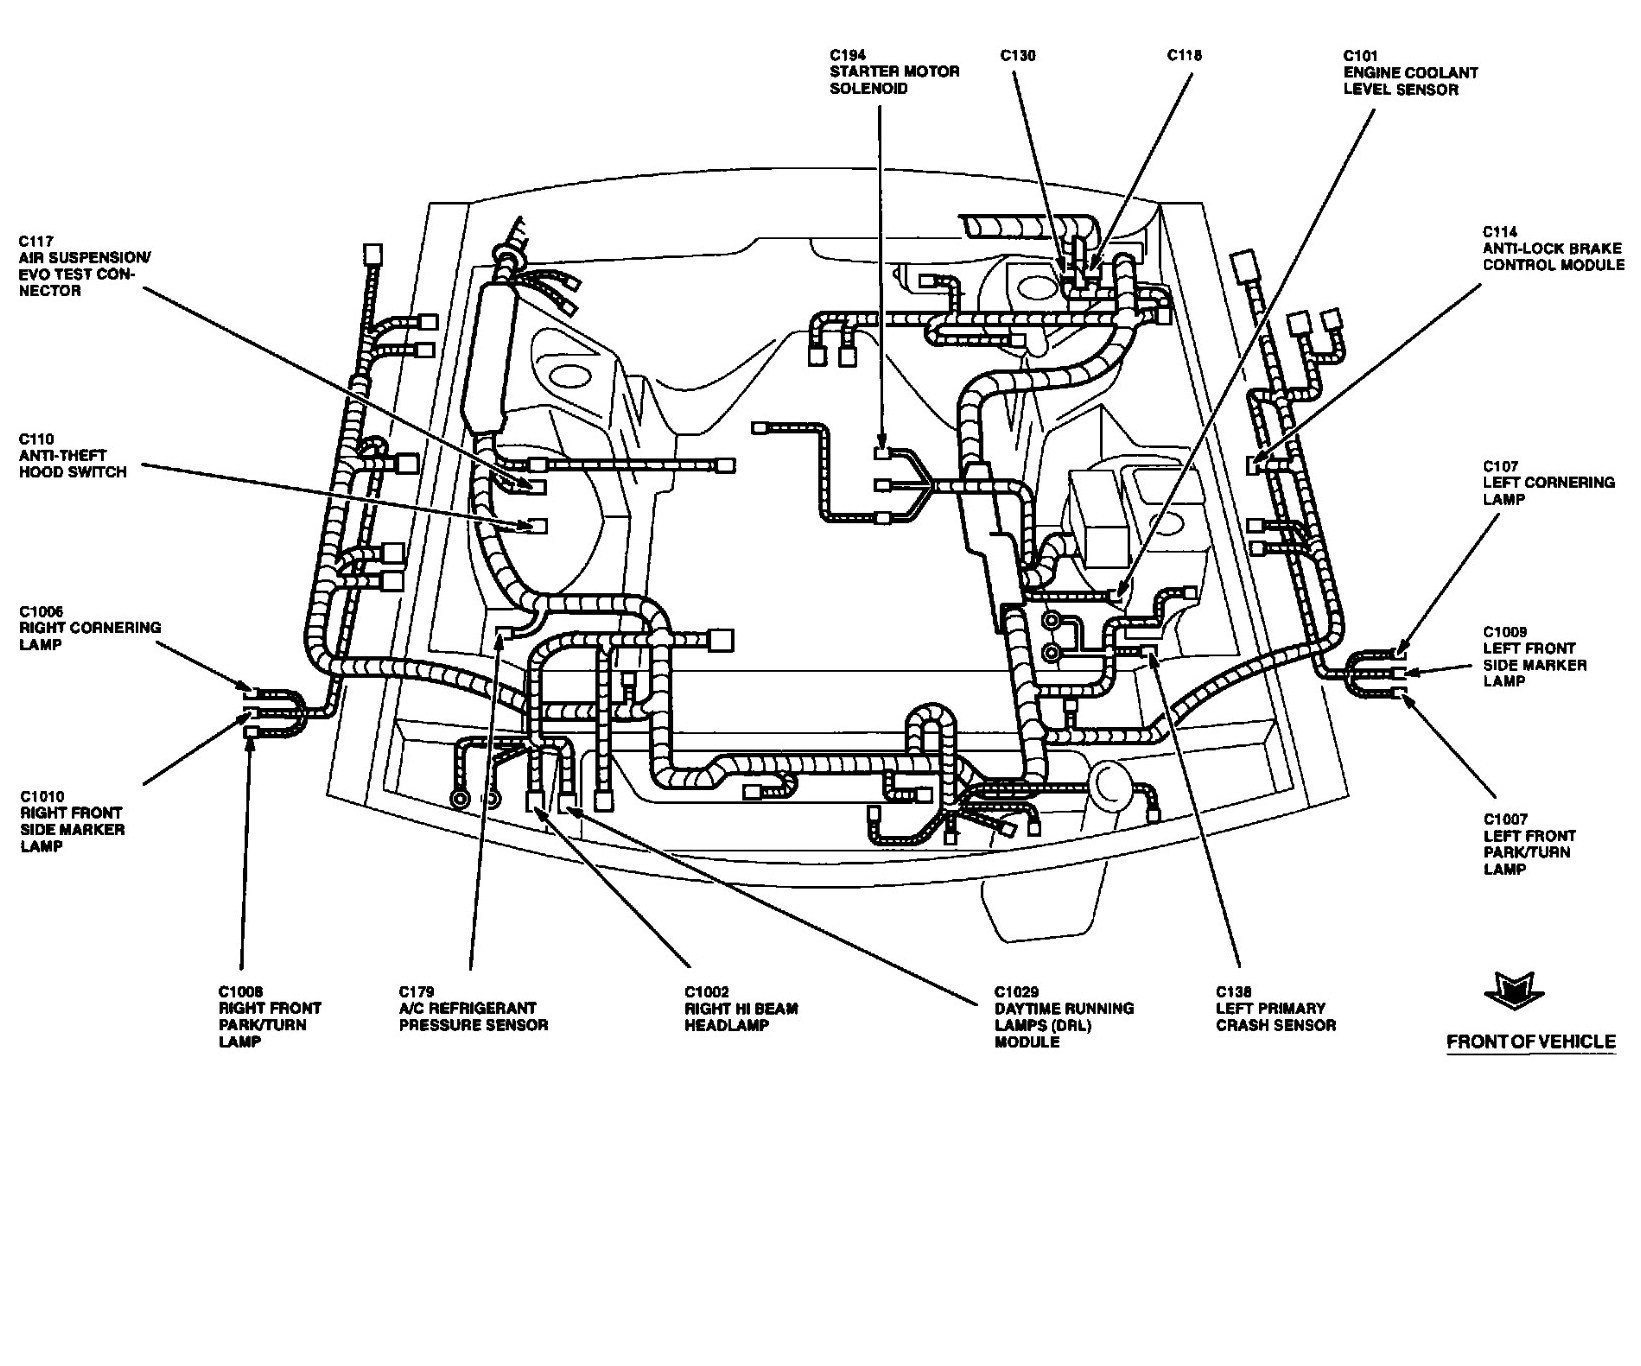 1994 lincoln mark viii wiring diagram